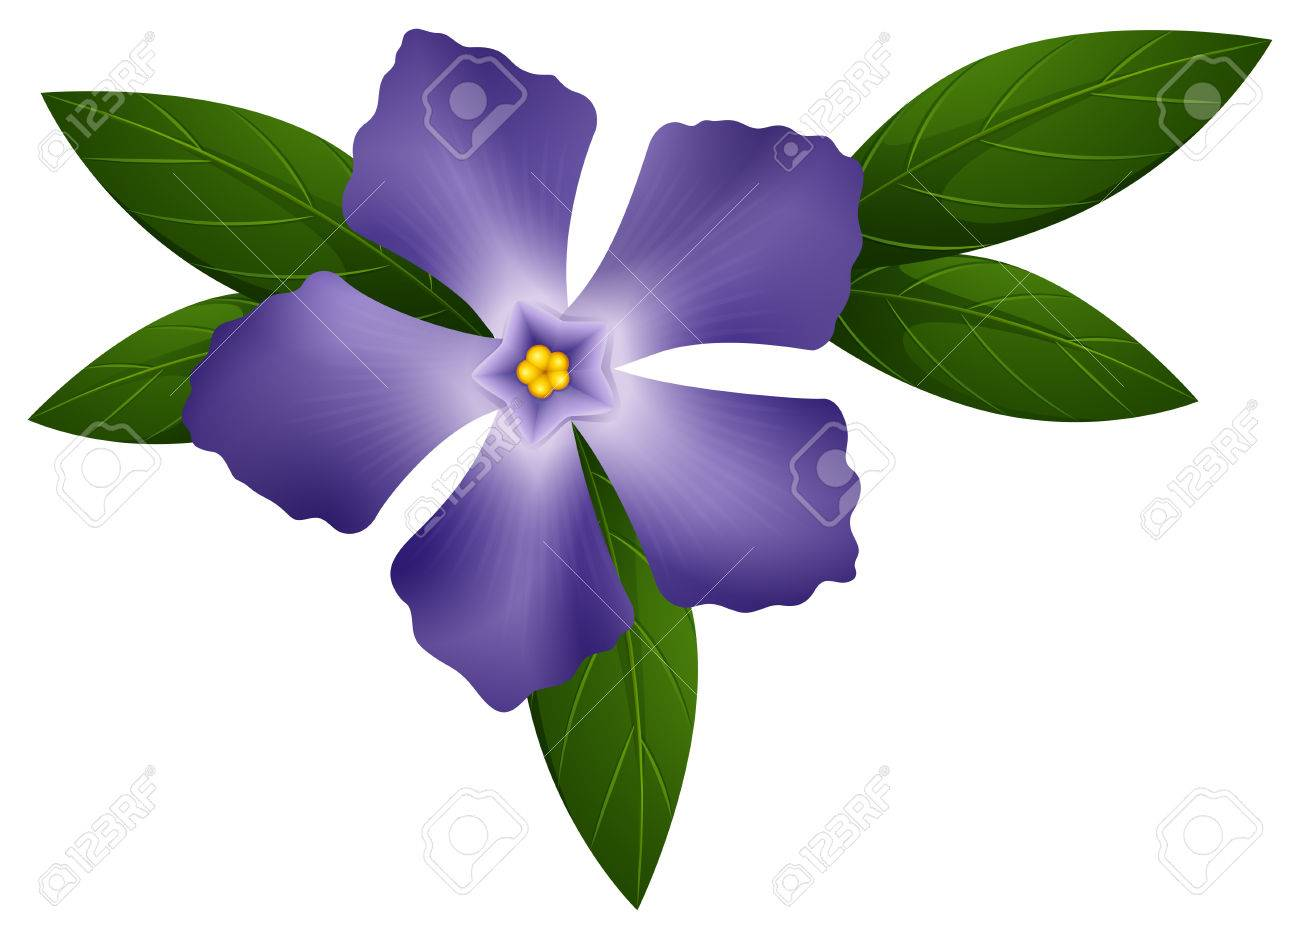 Periwinkle In Blue Color Illustration Royalty Free Cliparts Vectors